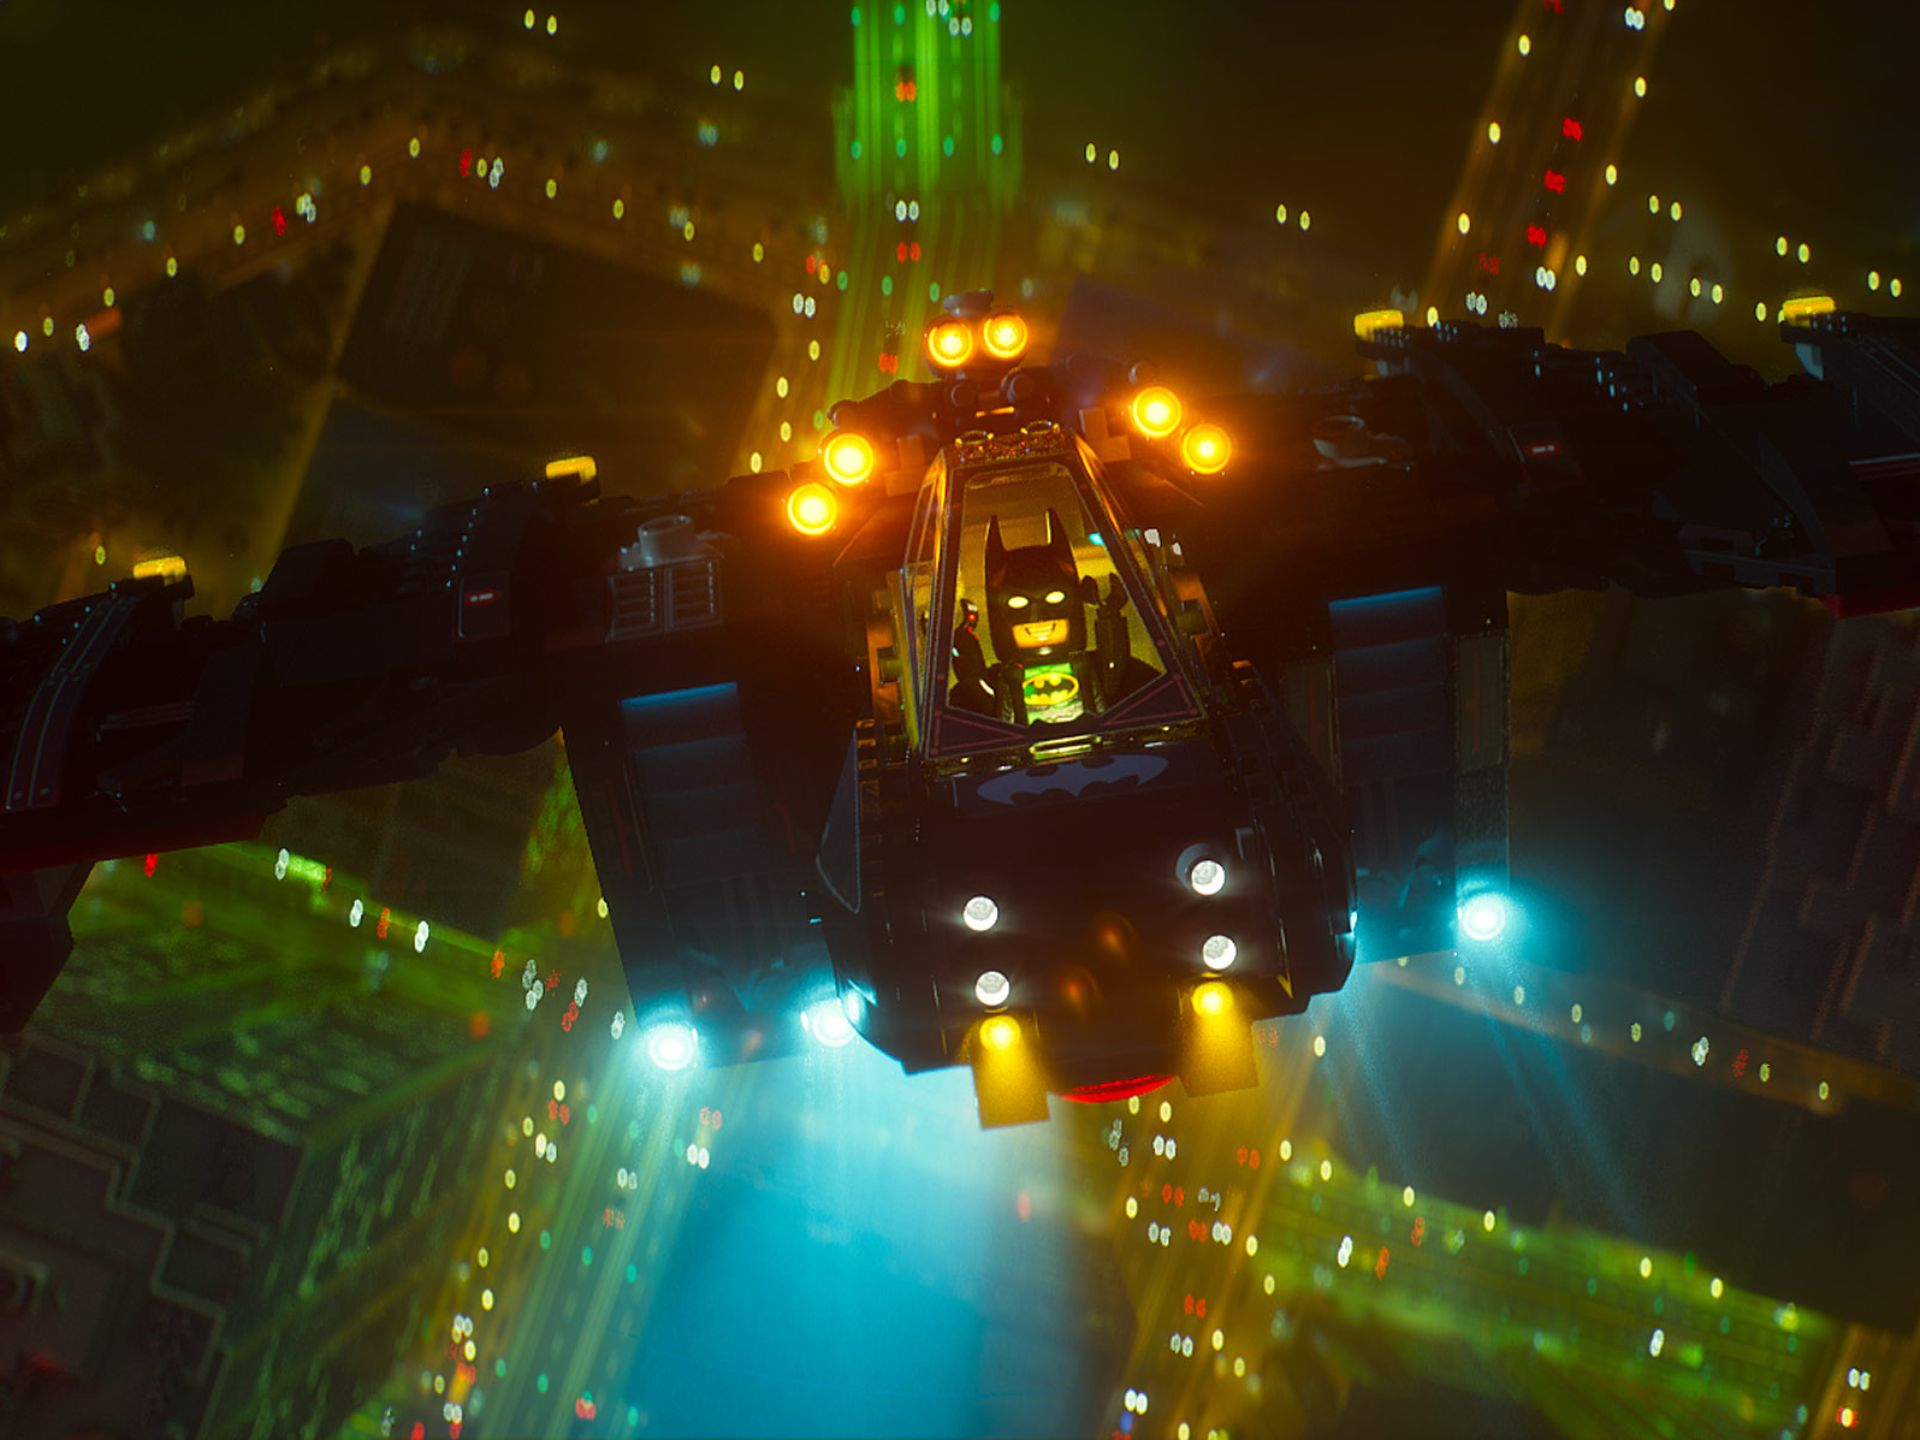 Premières images du film The Batman LEGO Movie 2017